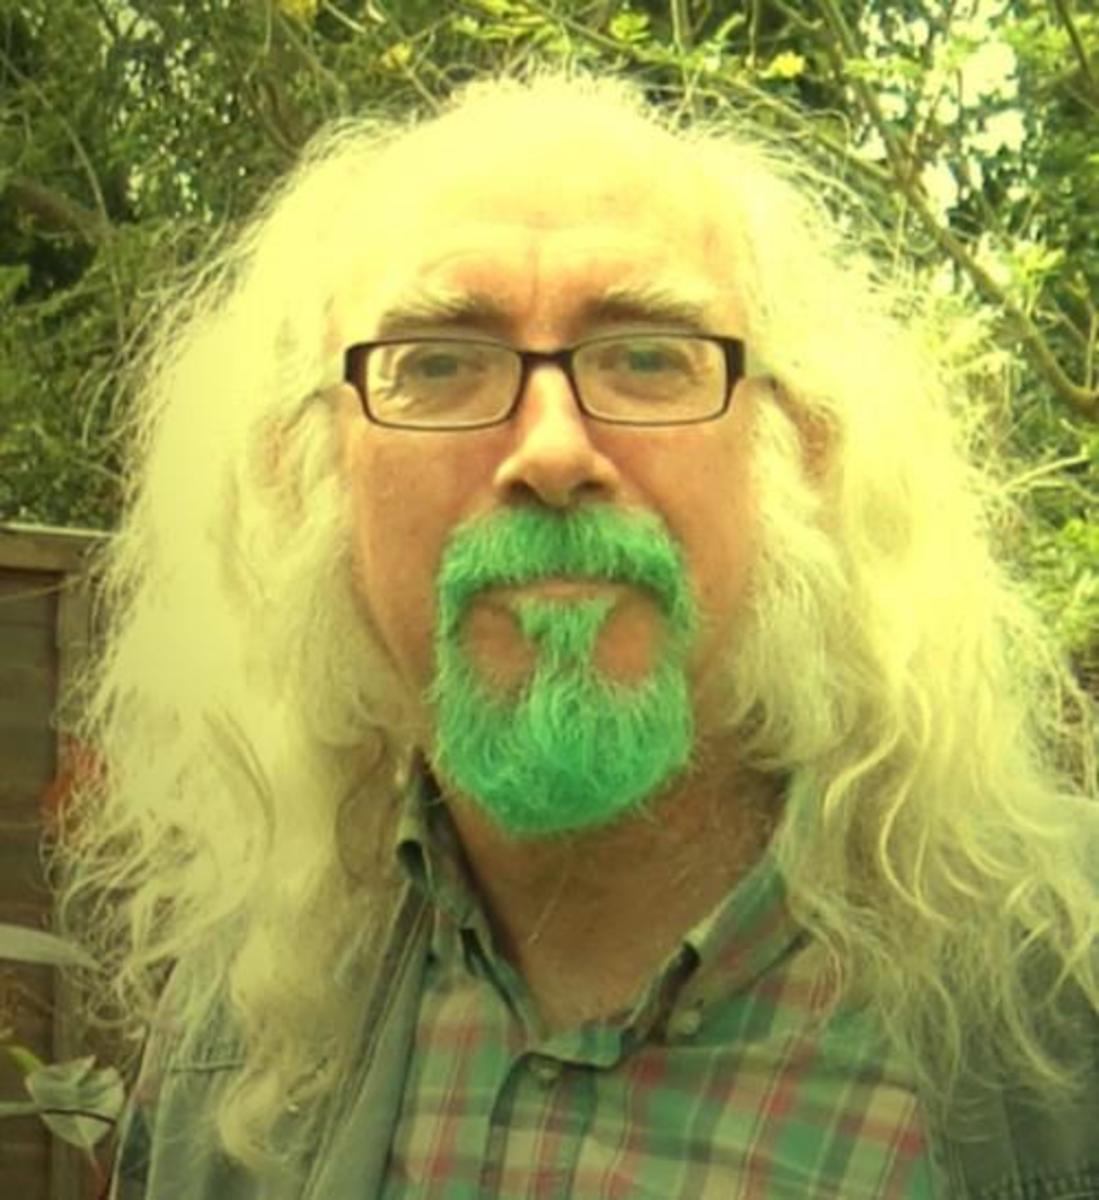 Green Beard and snow white hair